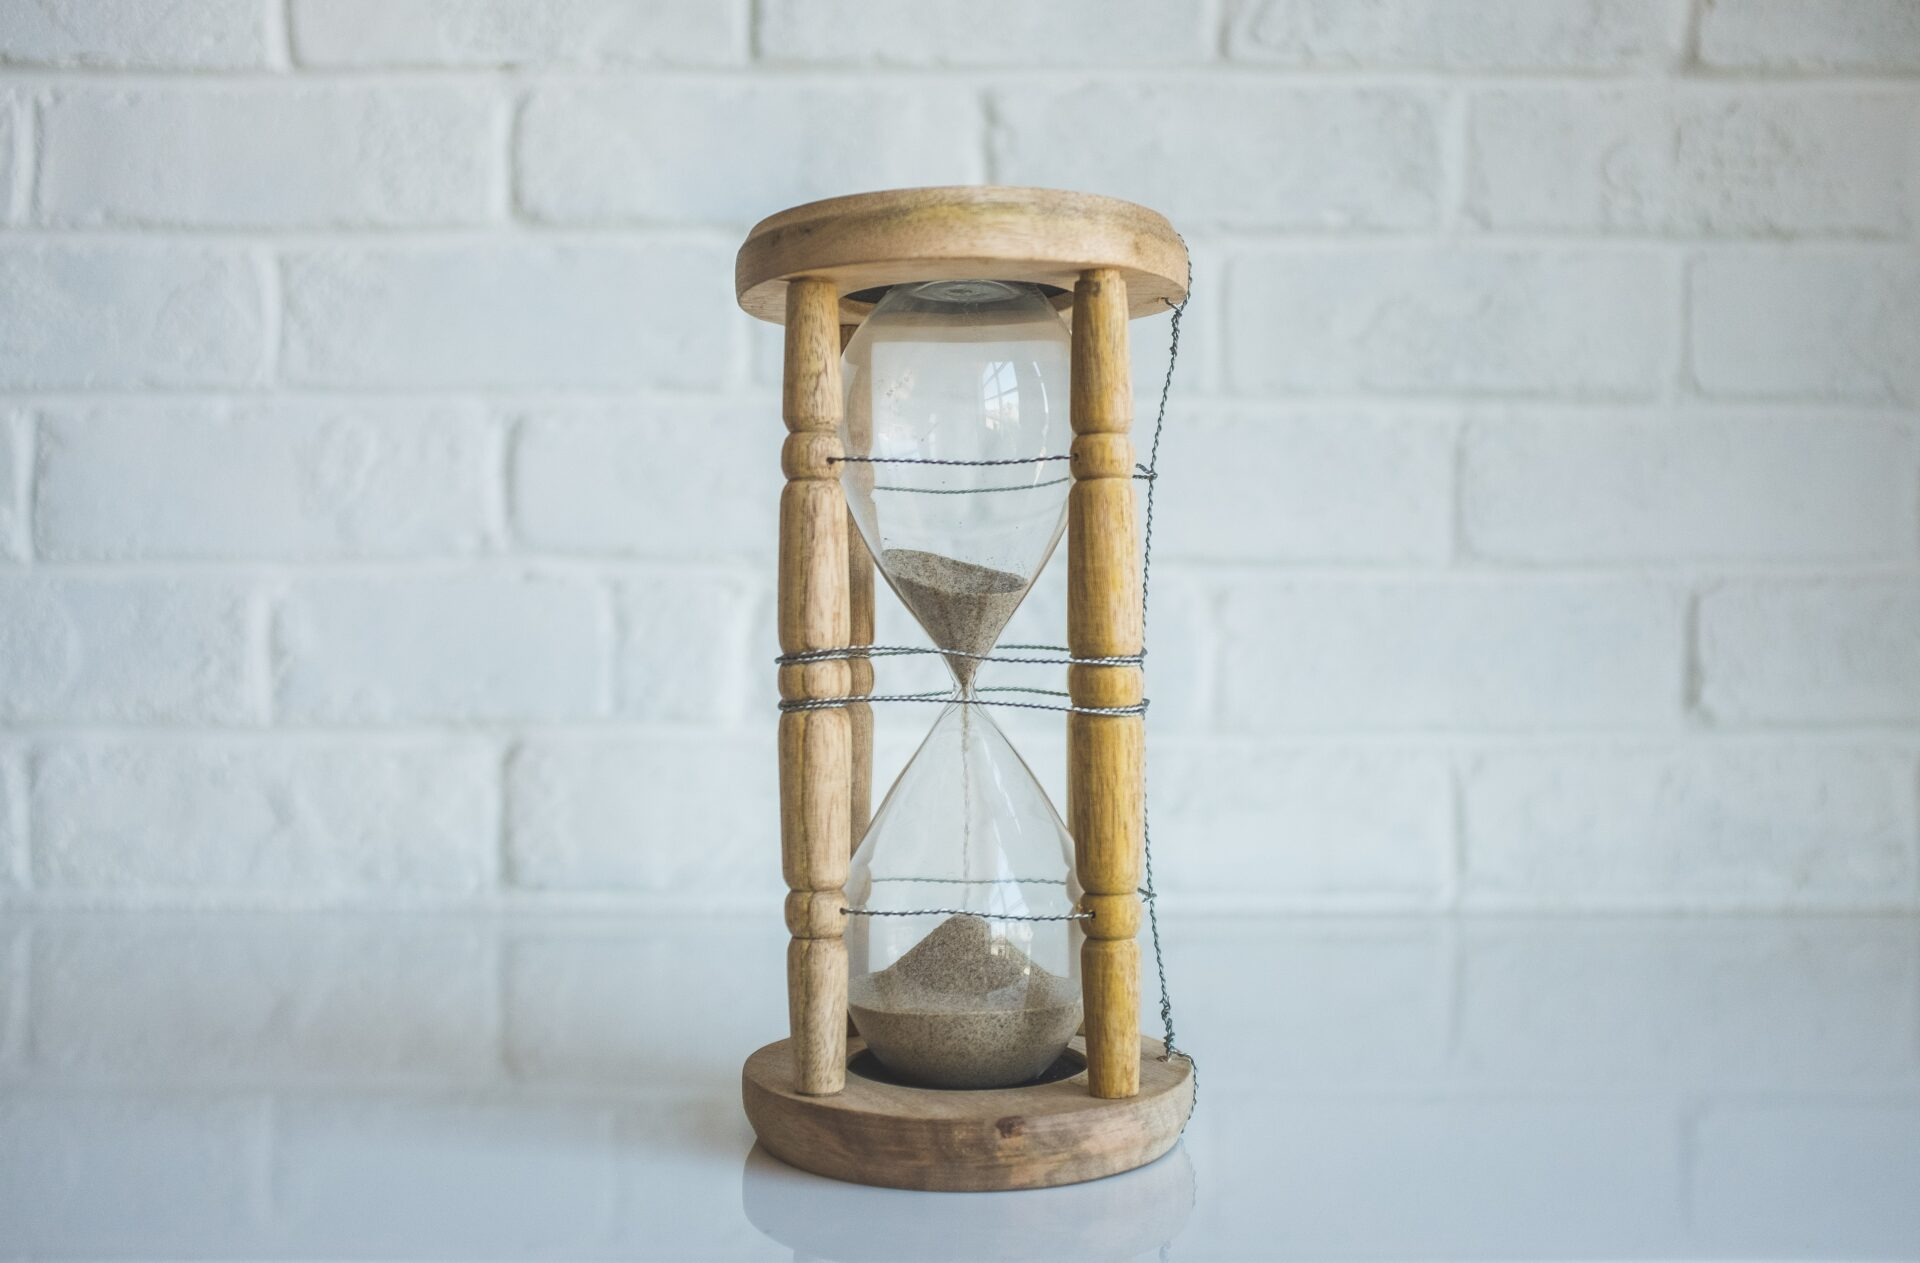 a wooden hourglass on a white tabletop in front of a white brick wall.